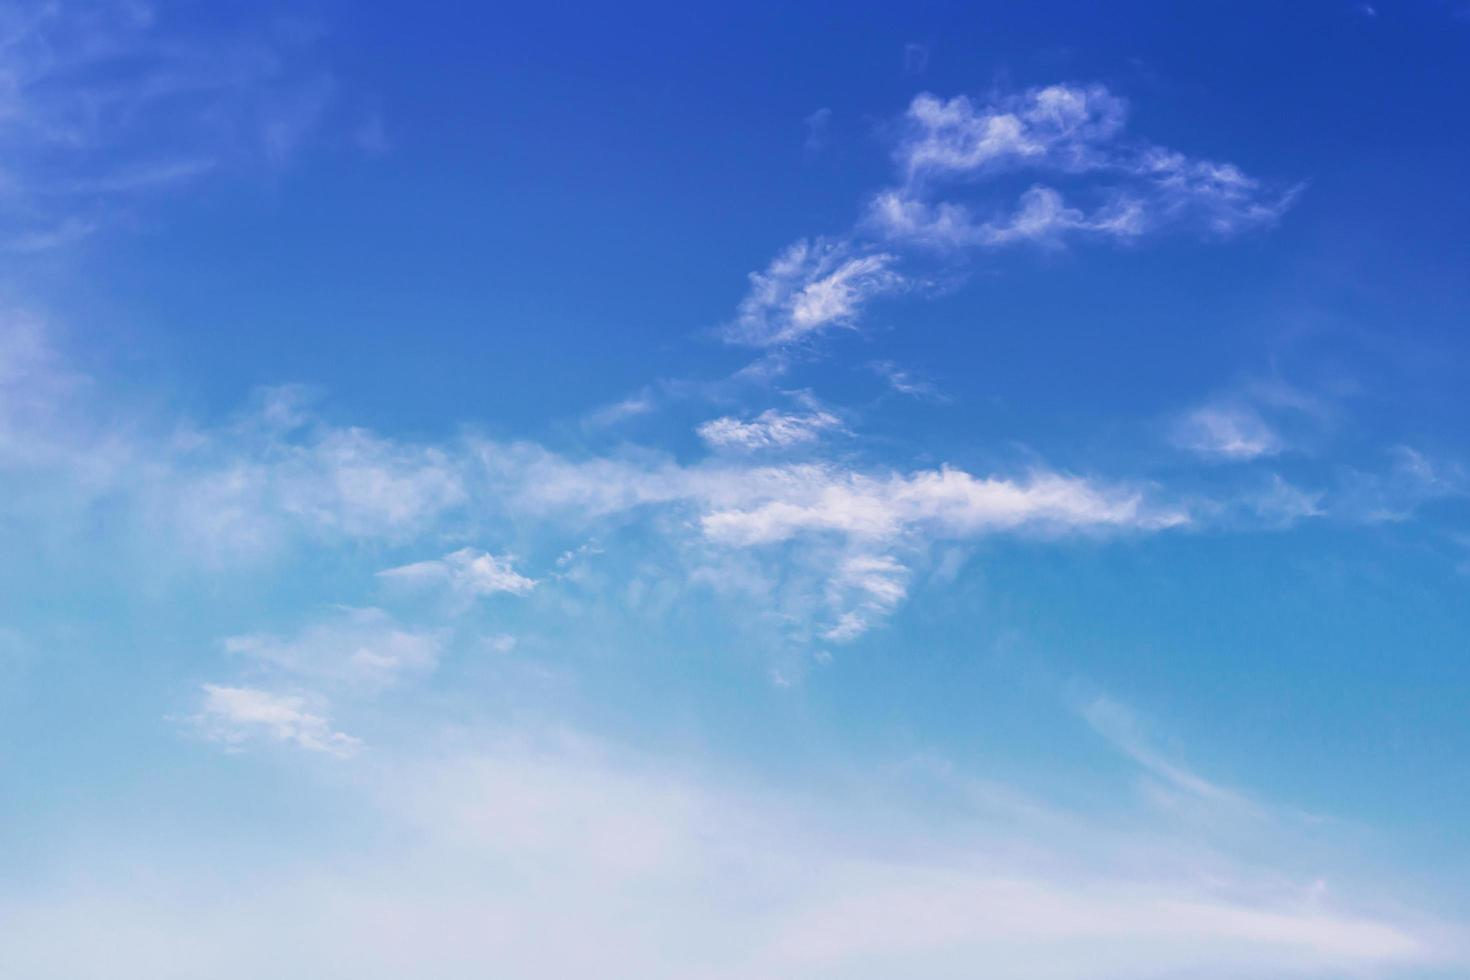 Blue sky with clouds photo